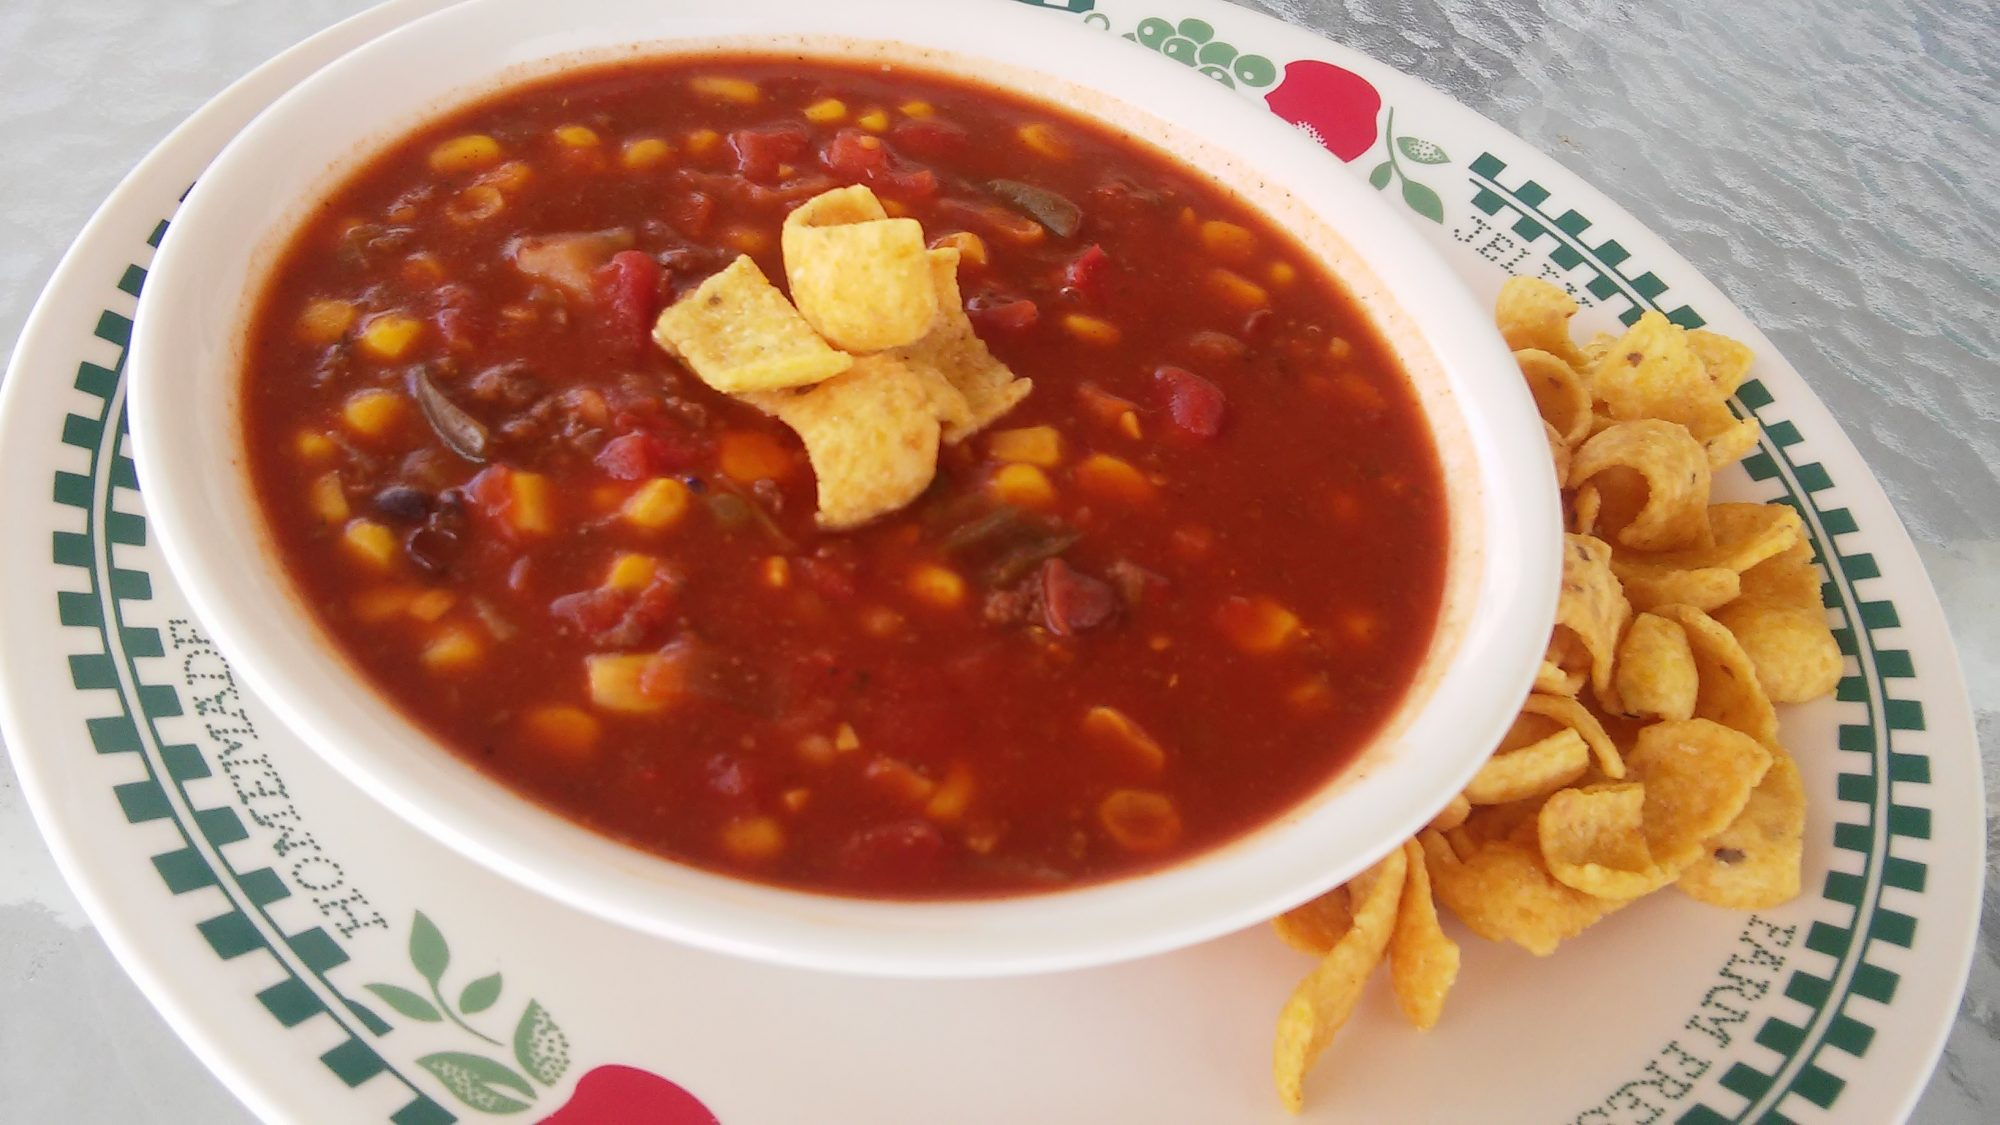 Soup with beans, corn, and tomatoes